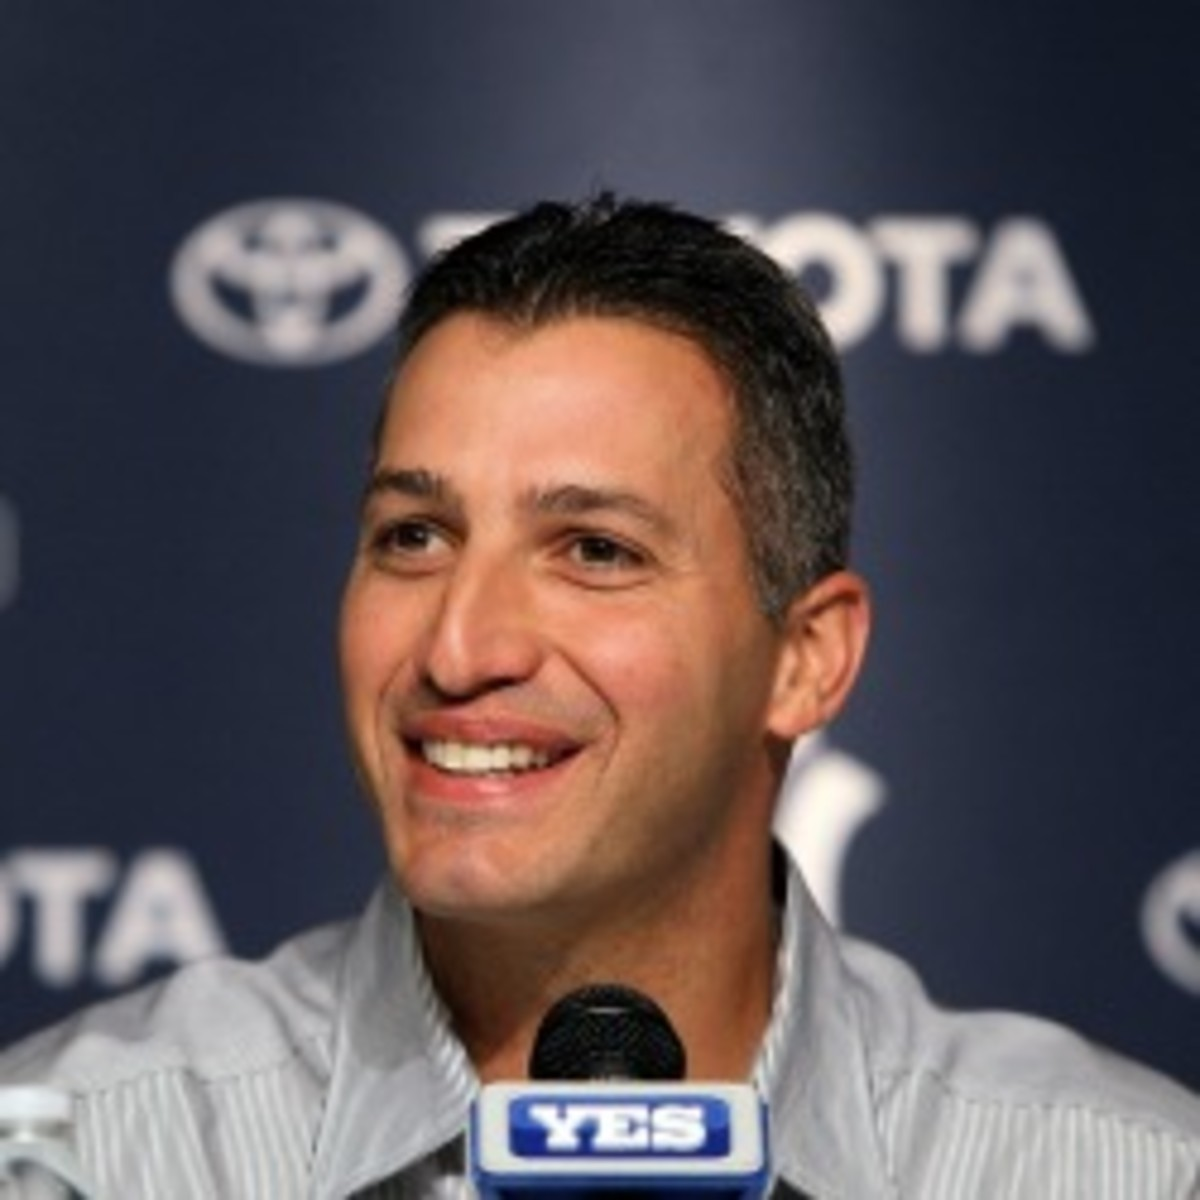 40-year-old Andy Pettitte returned to the Yankees on a one-year, $12-million deal after posting a 2.87 ERA in 2012. (Jim McIsaac/Getty Images)